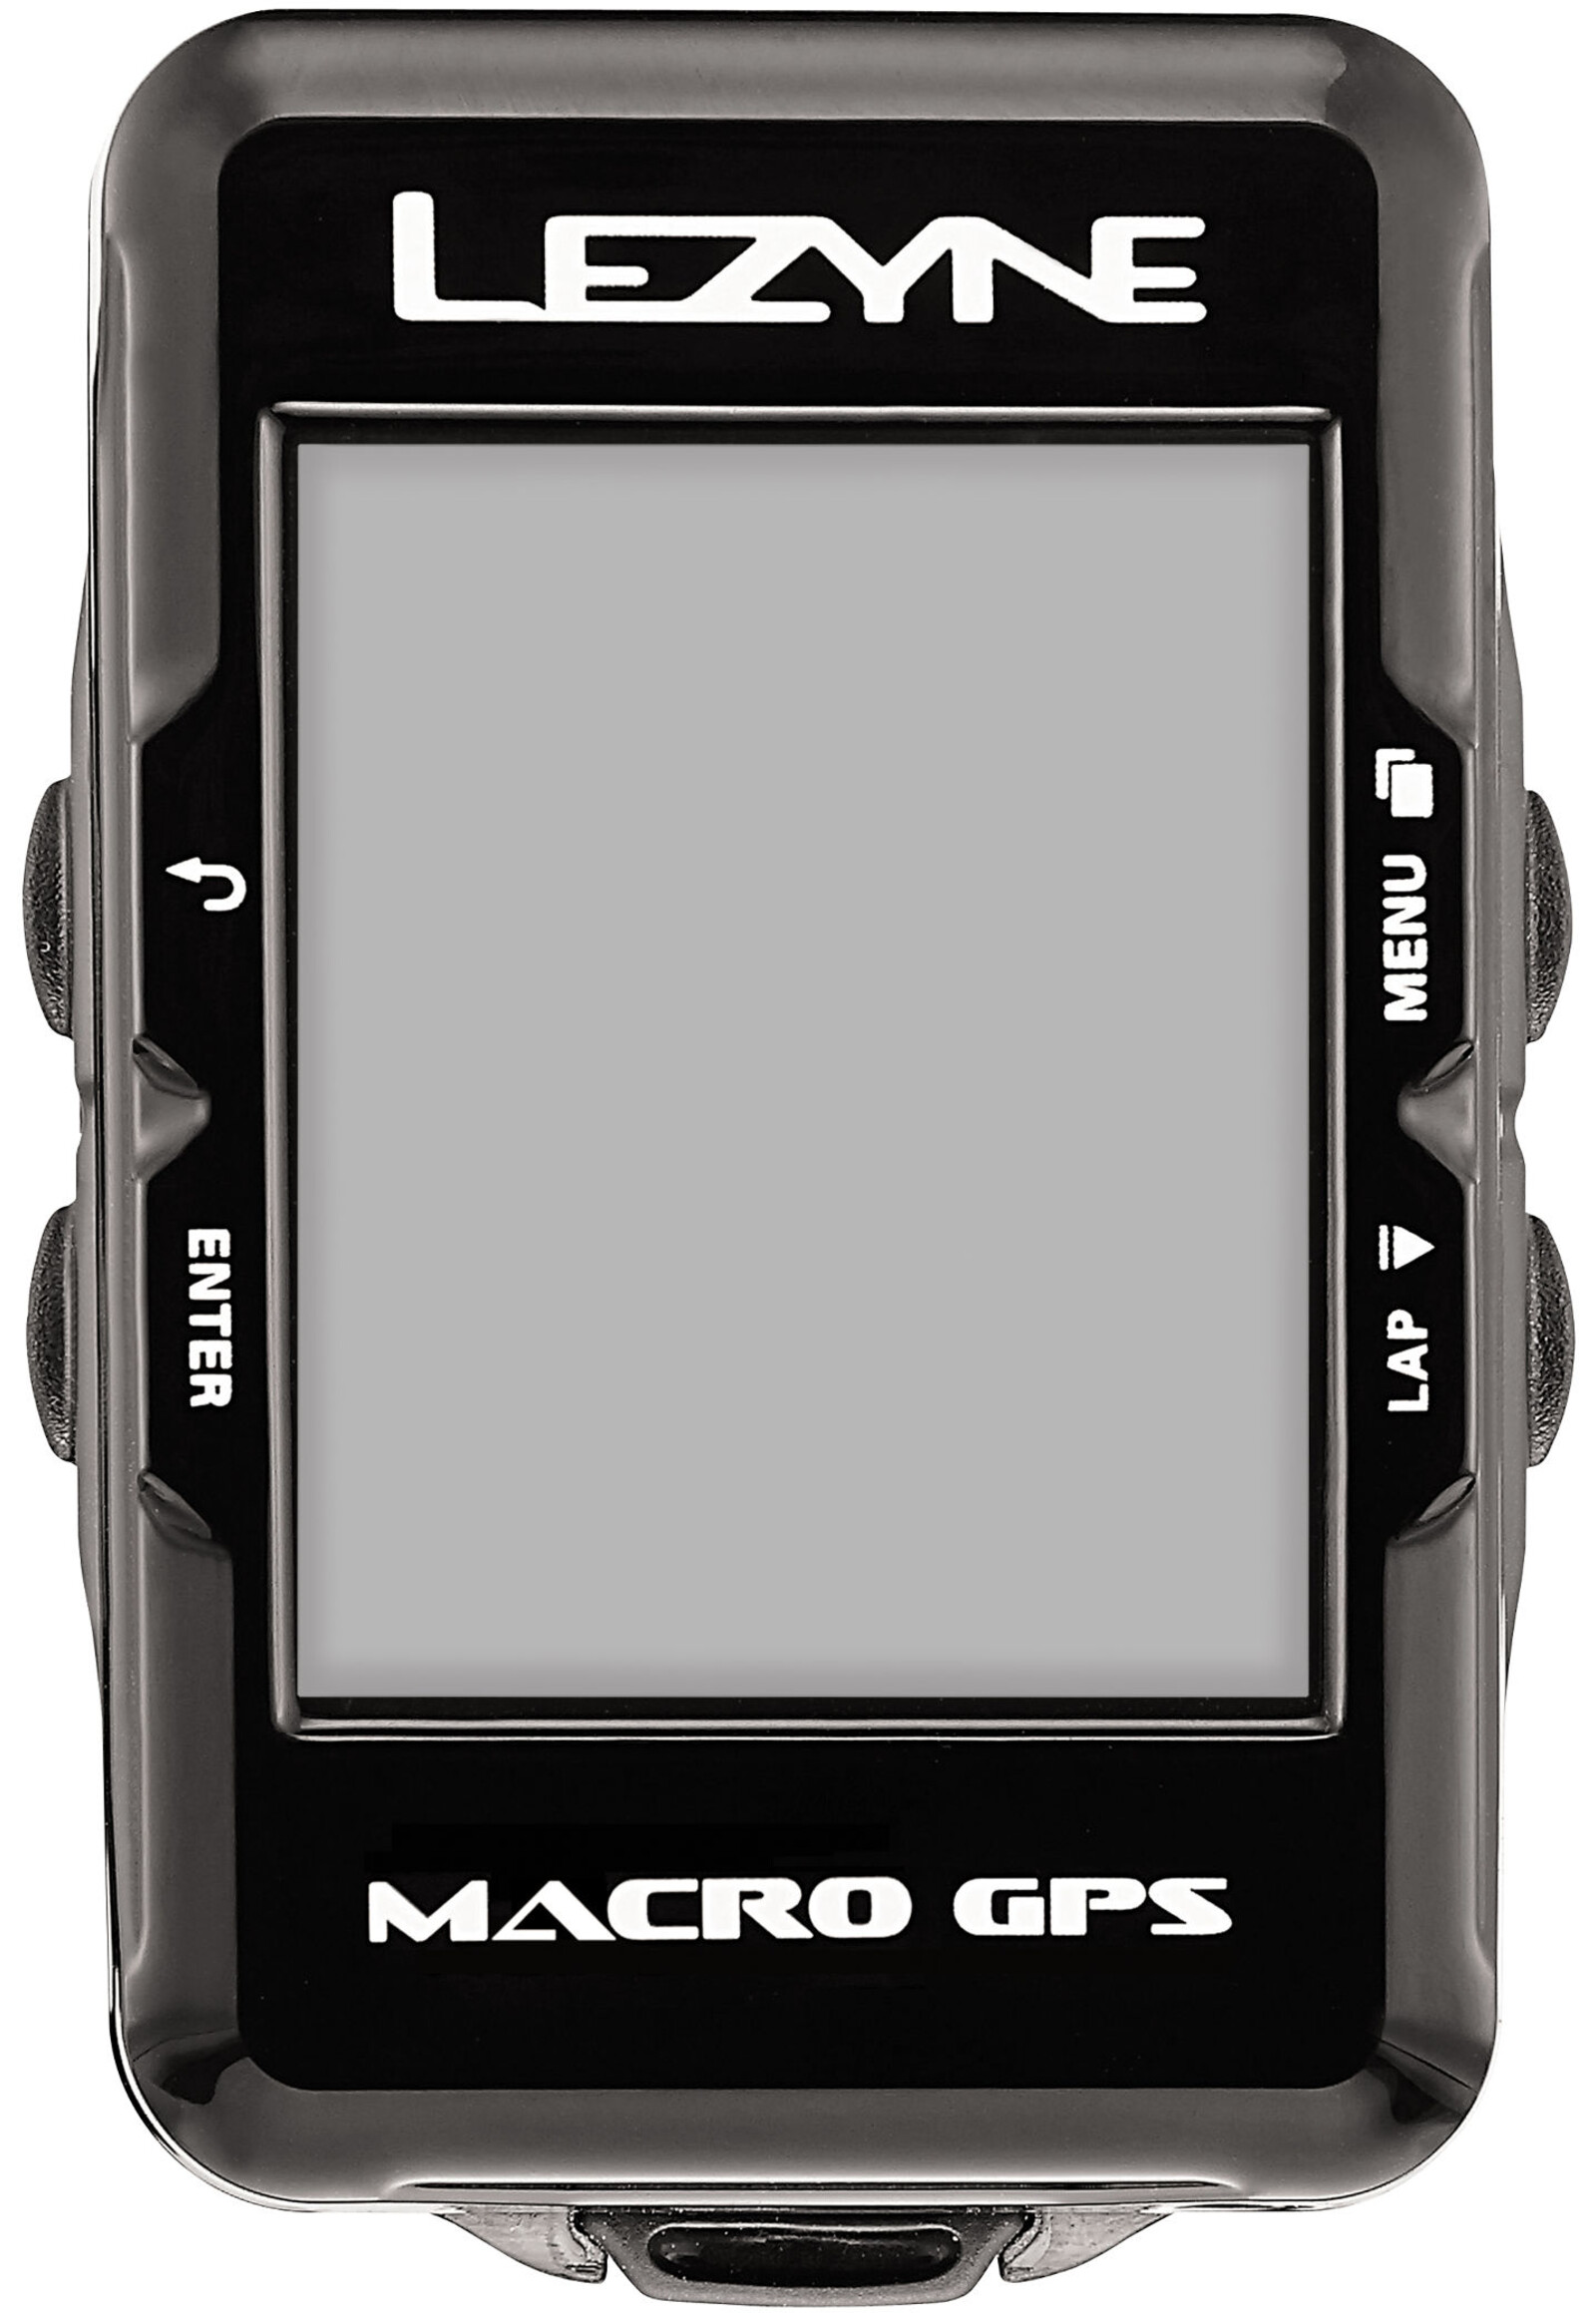 lezyne macro gps fahrradcomputer mit herzfrequenzmessger t und speed cadence sensor schwarz. Black Bedroom Furniture Sets. Home Design Ideas